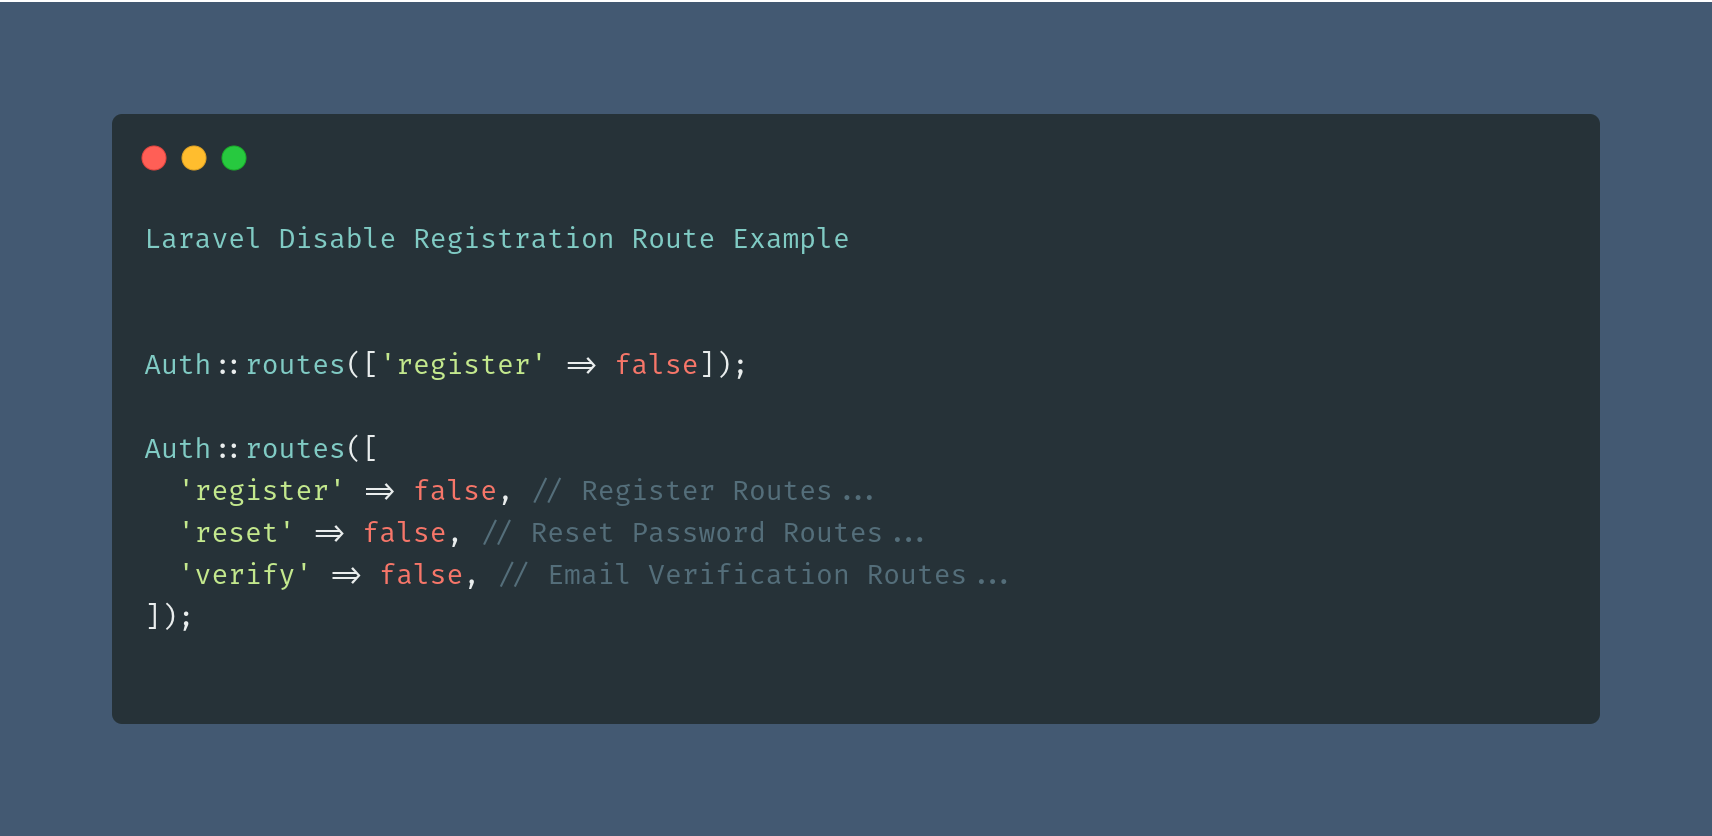 Laravel Disable Registration Route Example